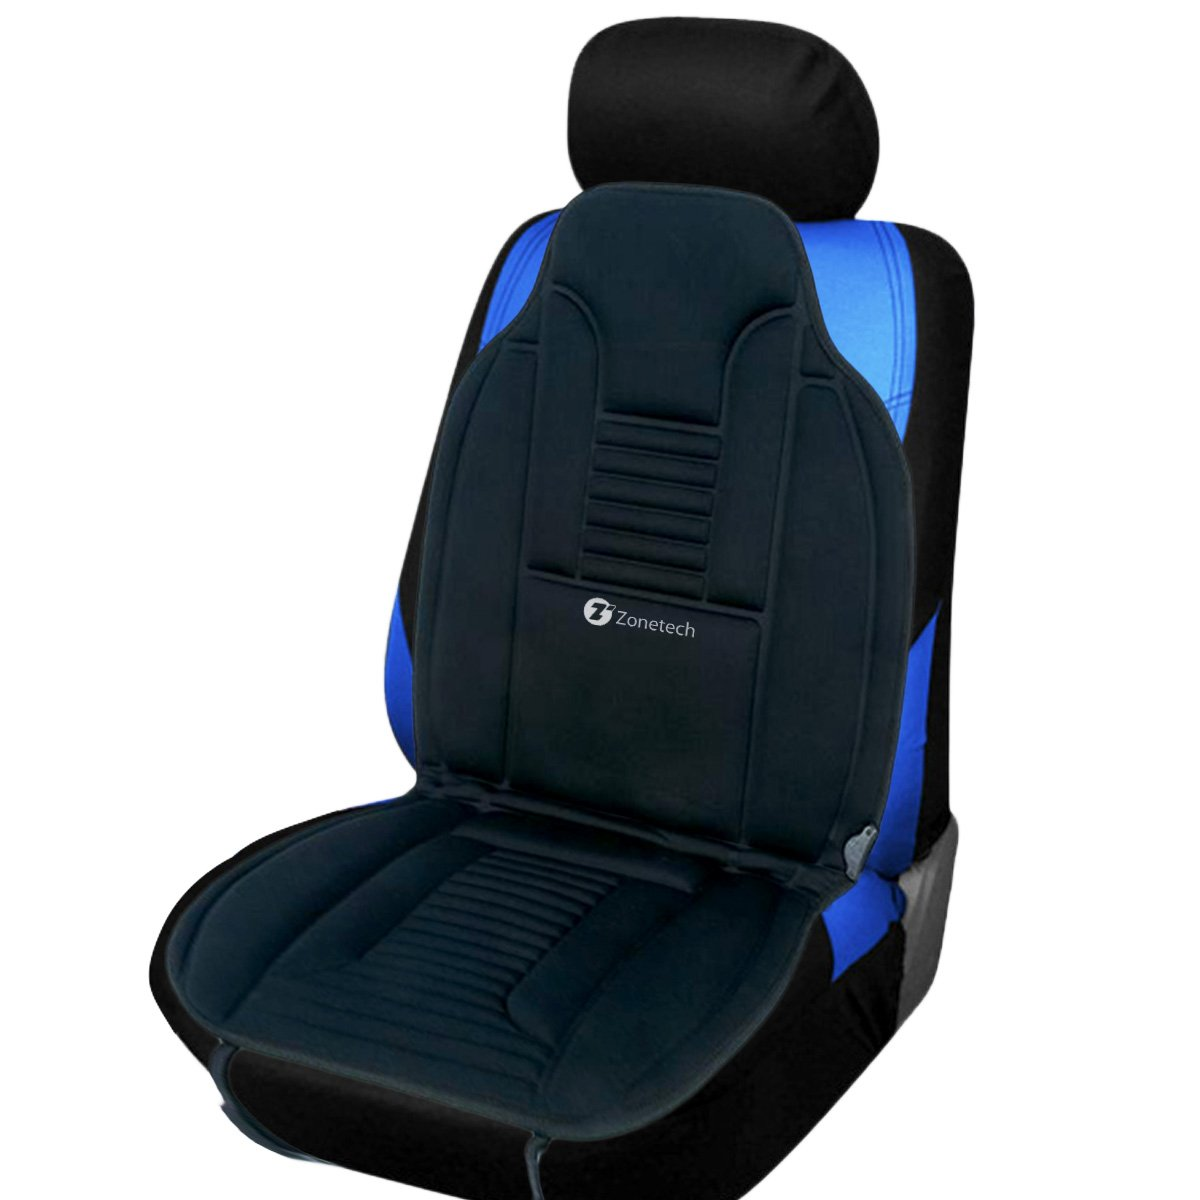 zone tech heated car seat chair cushion 12v heating warmer pad hot cover ebay. Black Bedroom Furniture Sets. Home Design Ideas